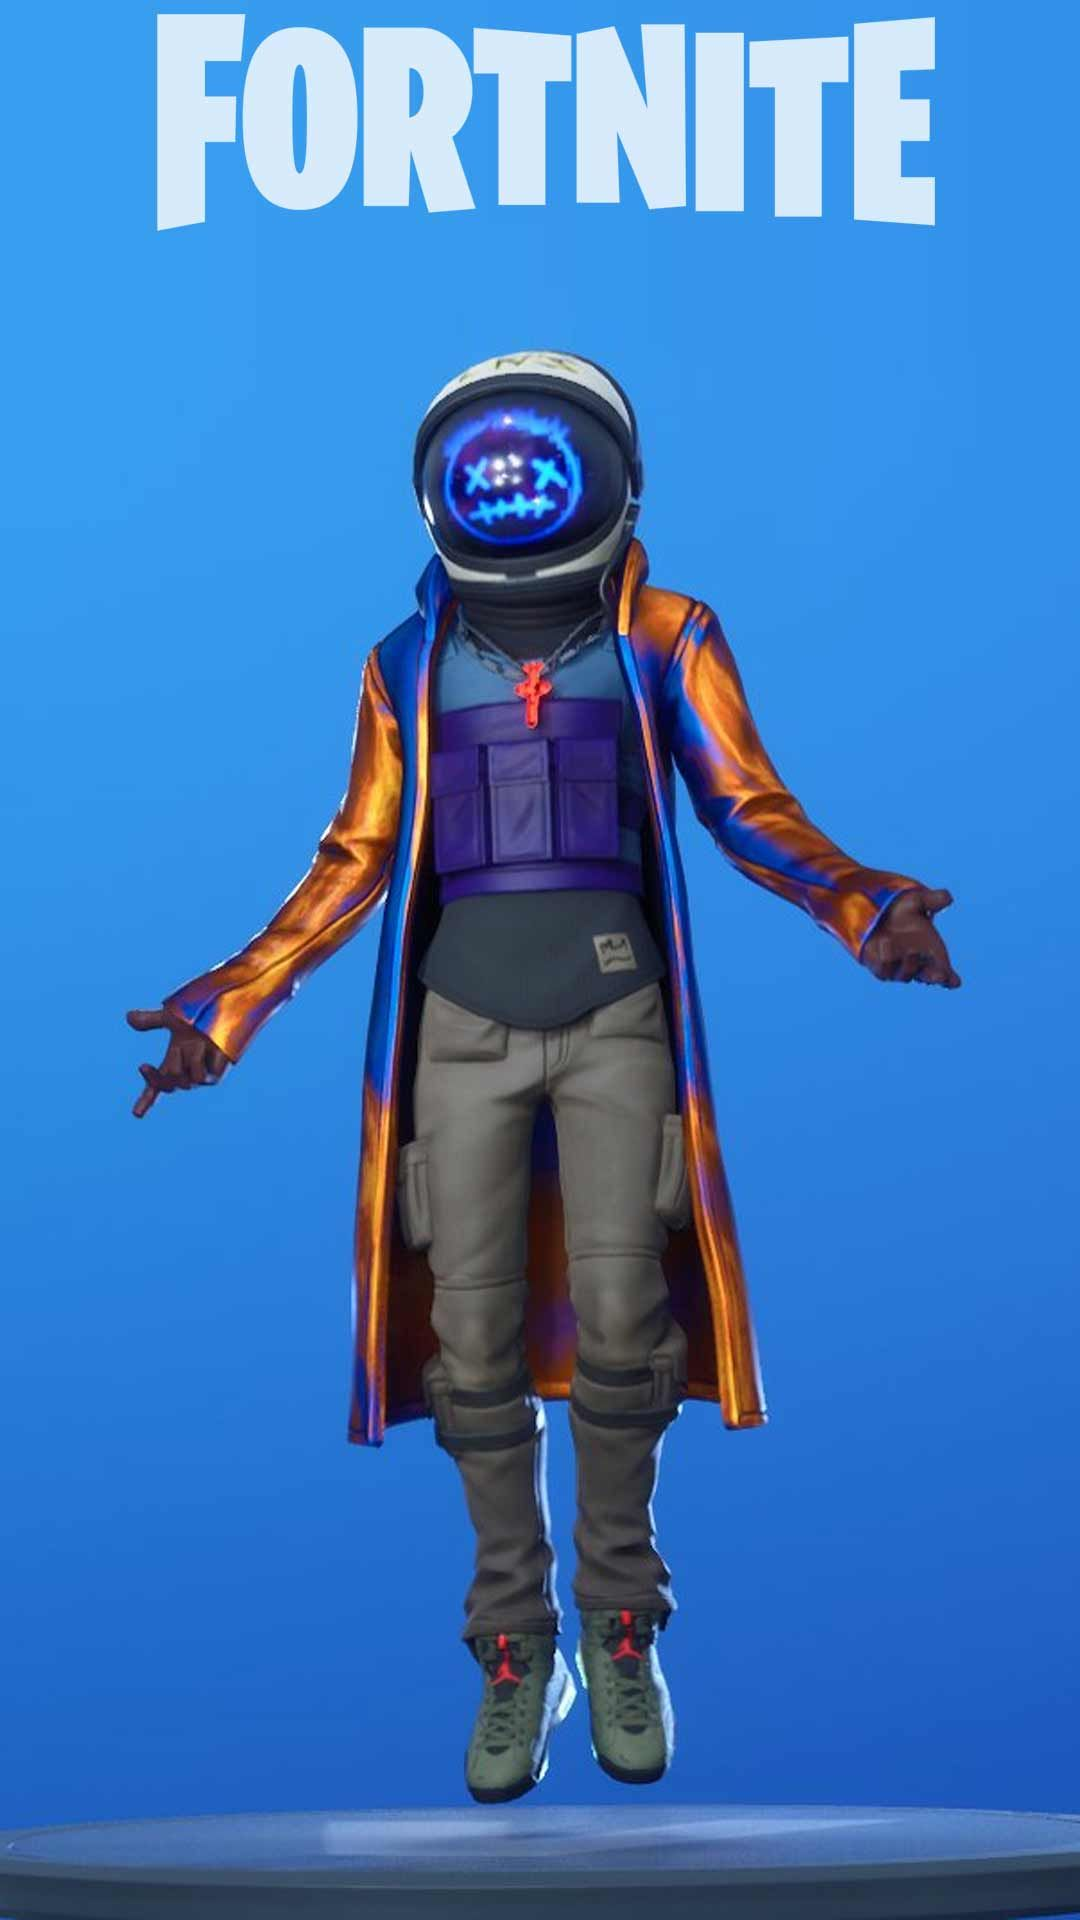 Astro Jack Fortnite Skin Wallpaper Hd Phone Backgrounds Art Poster For Iphone Android Home Screen In 2020 Astro Travis Scott Iphone Wallpaper Hd Phone Backgrounds